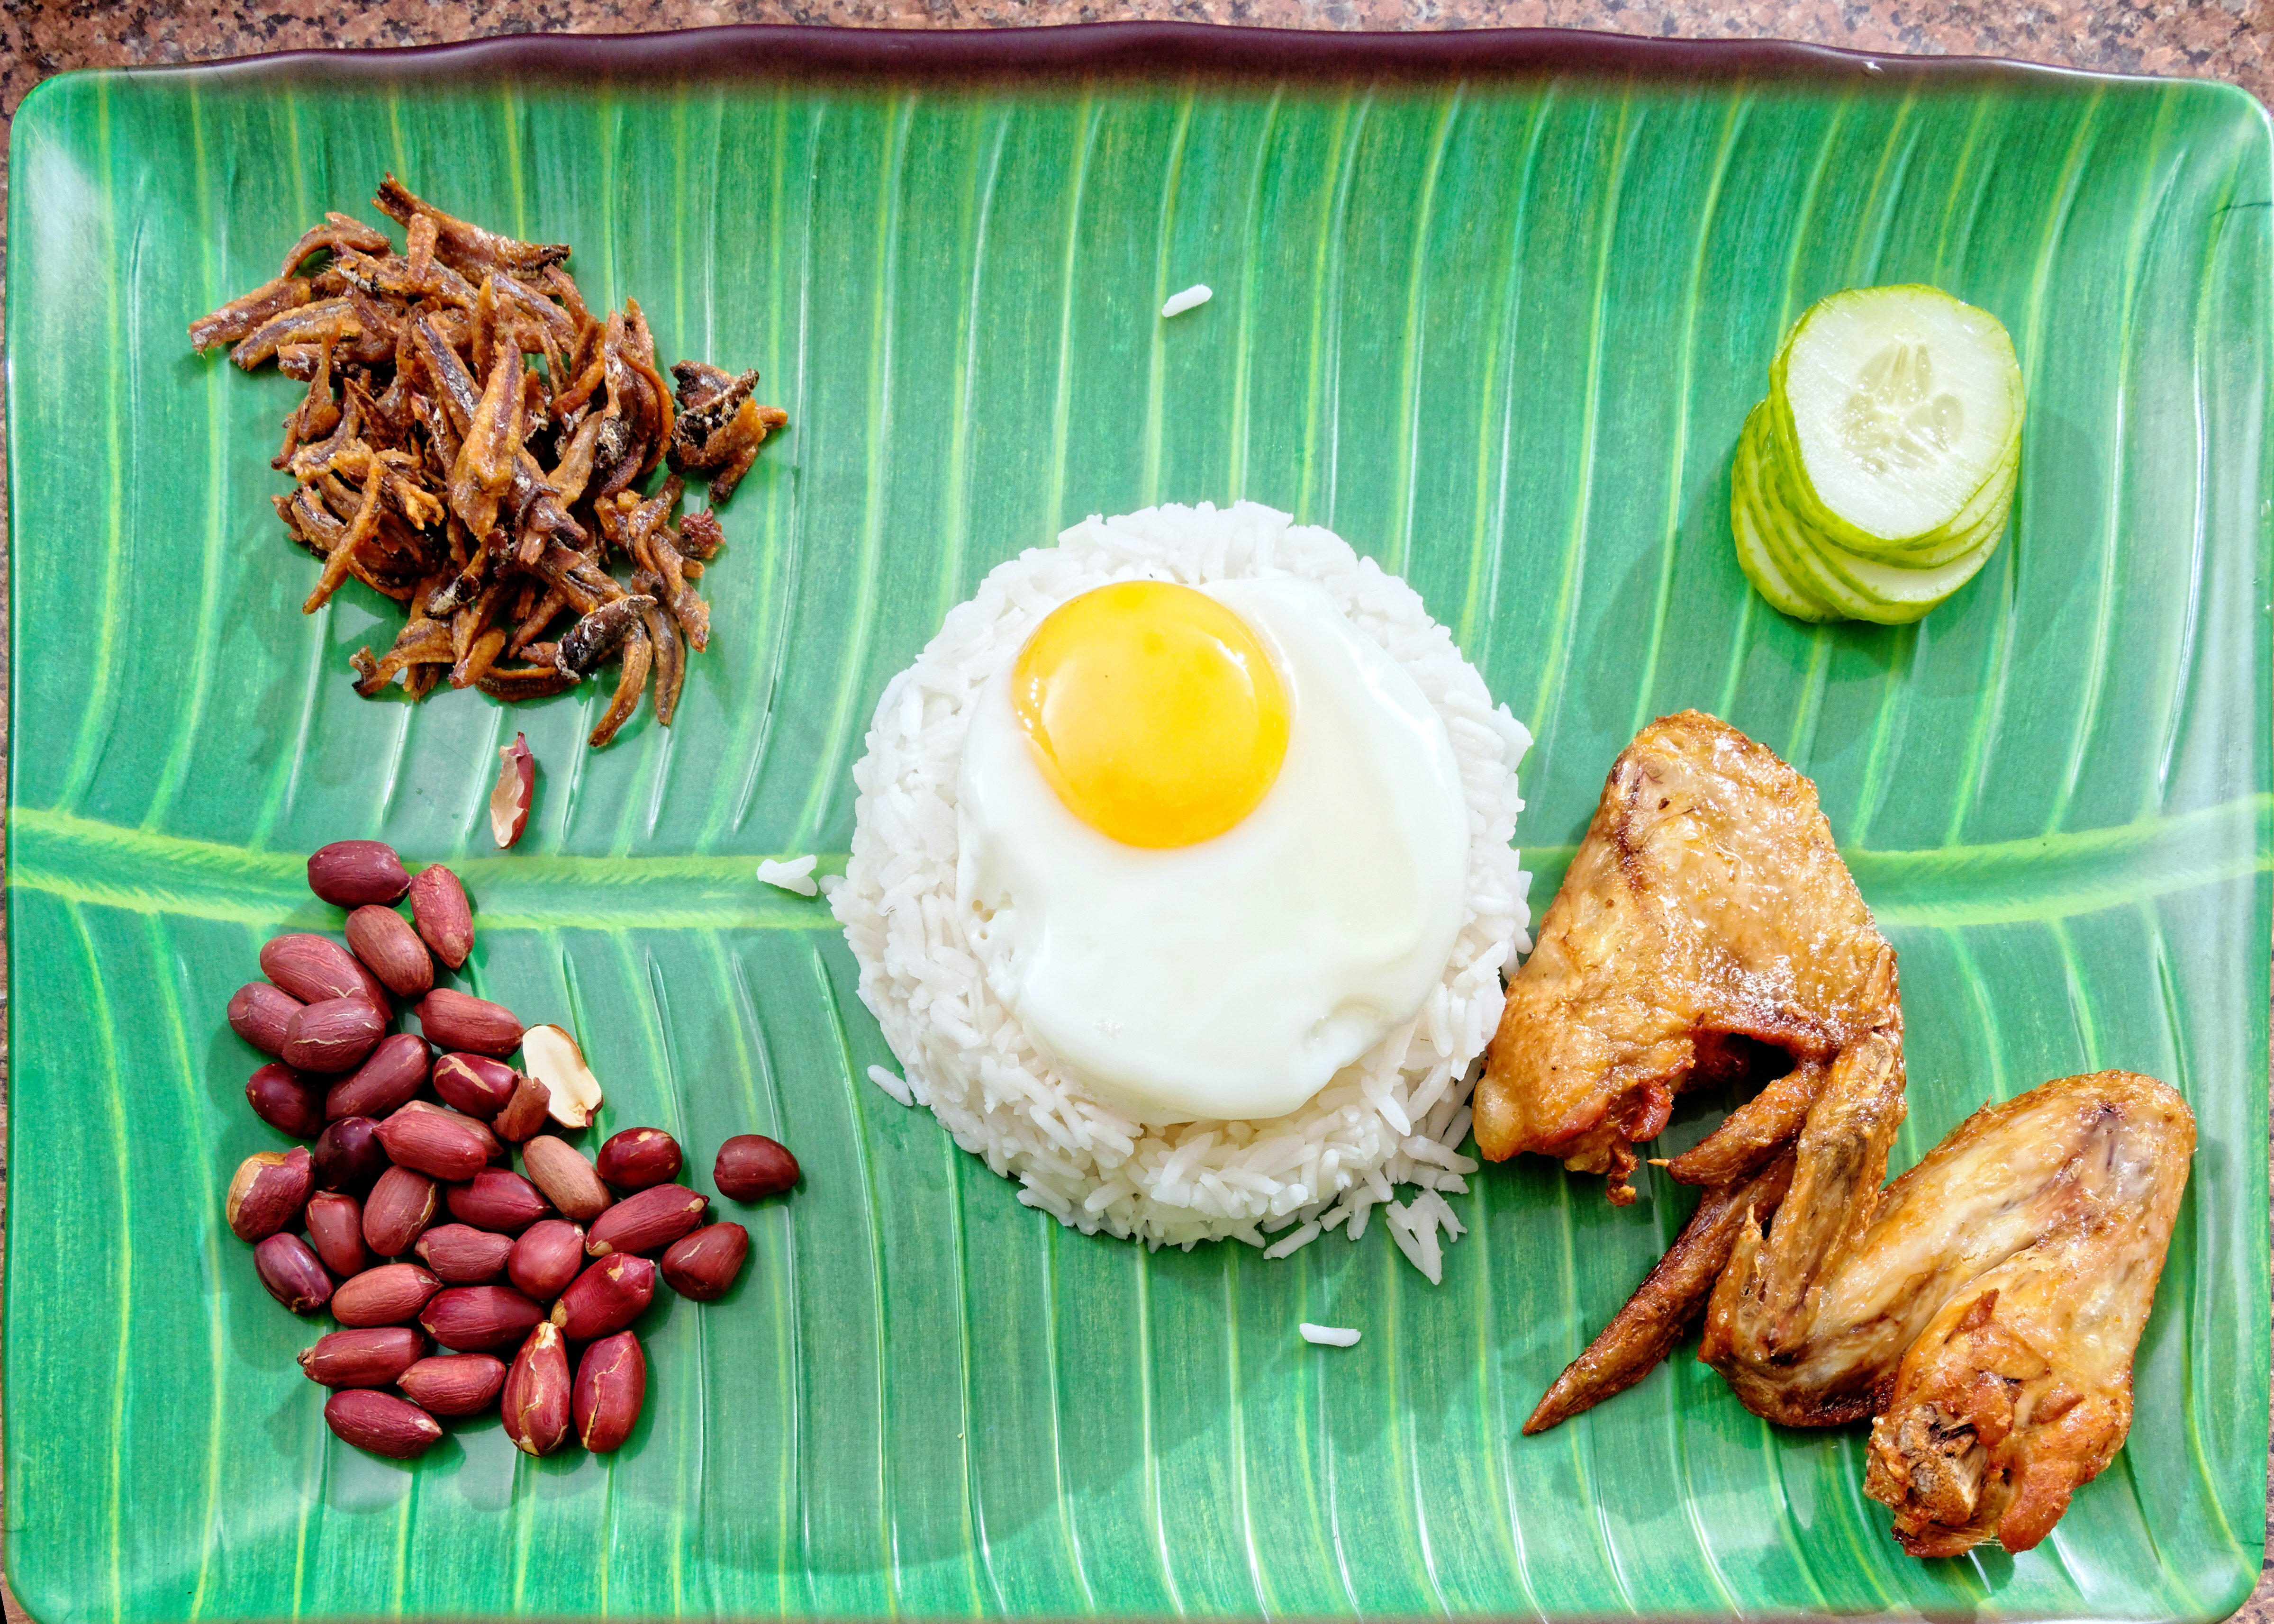 This should be Nasi-lemak.jpeg.  Is it missing?